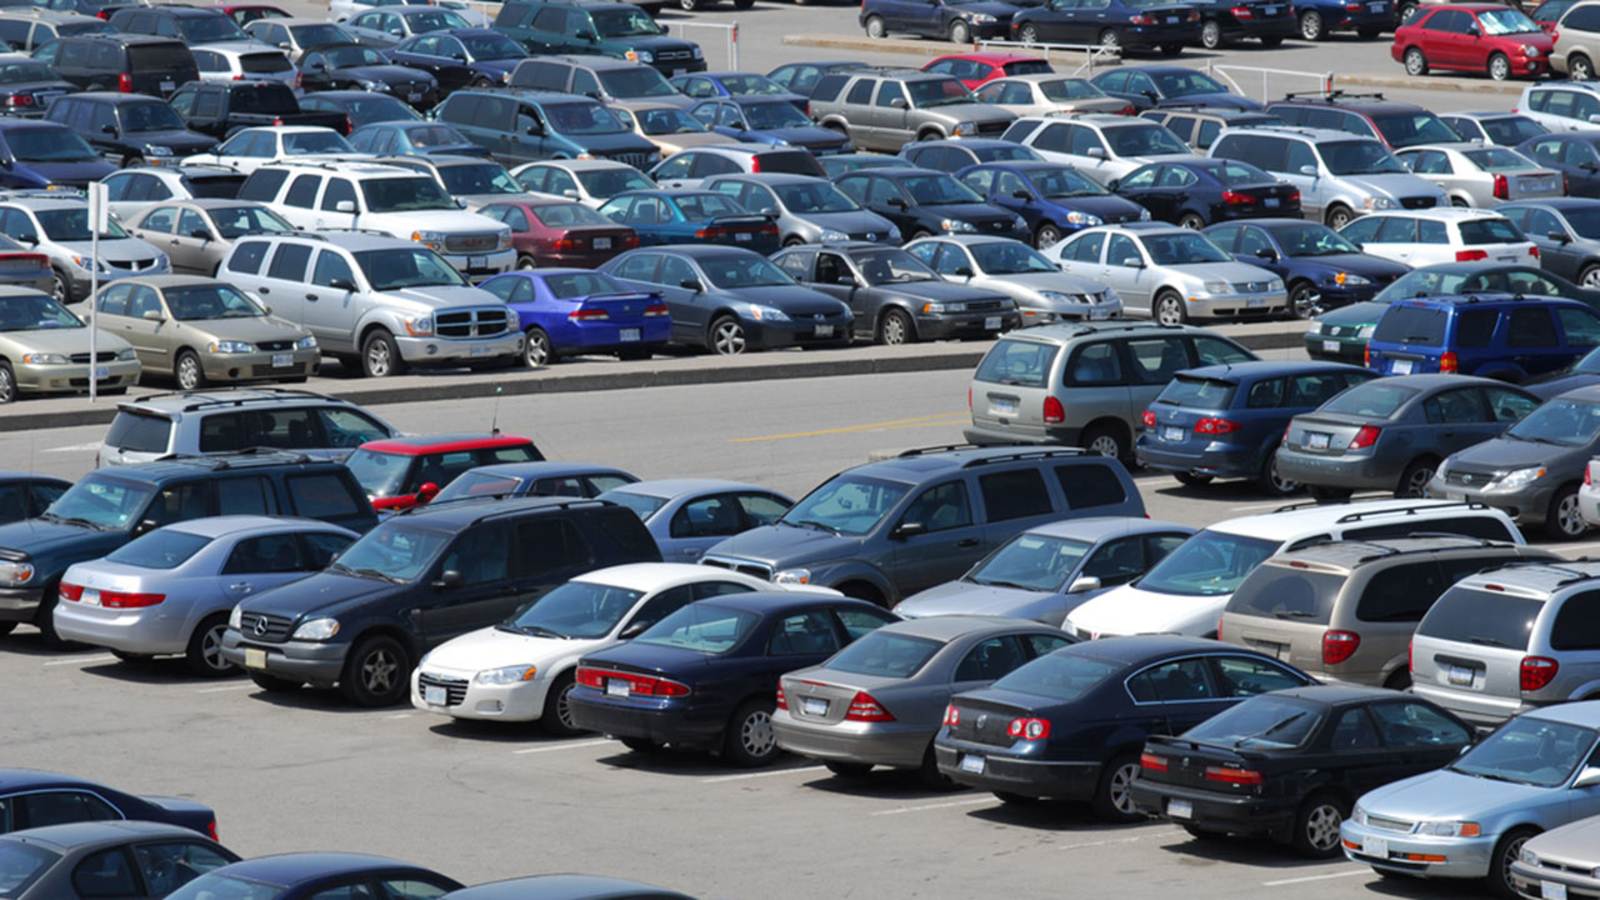 Turn To An App To Find Holiday Mall Parking Abc13 Houston